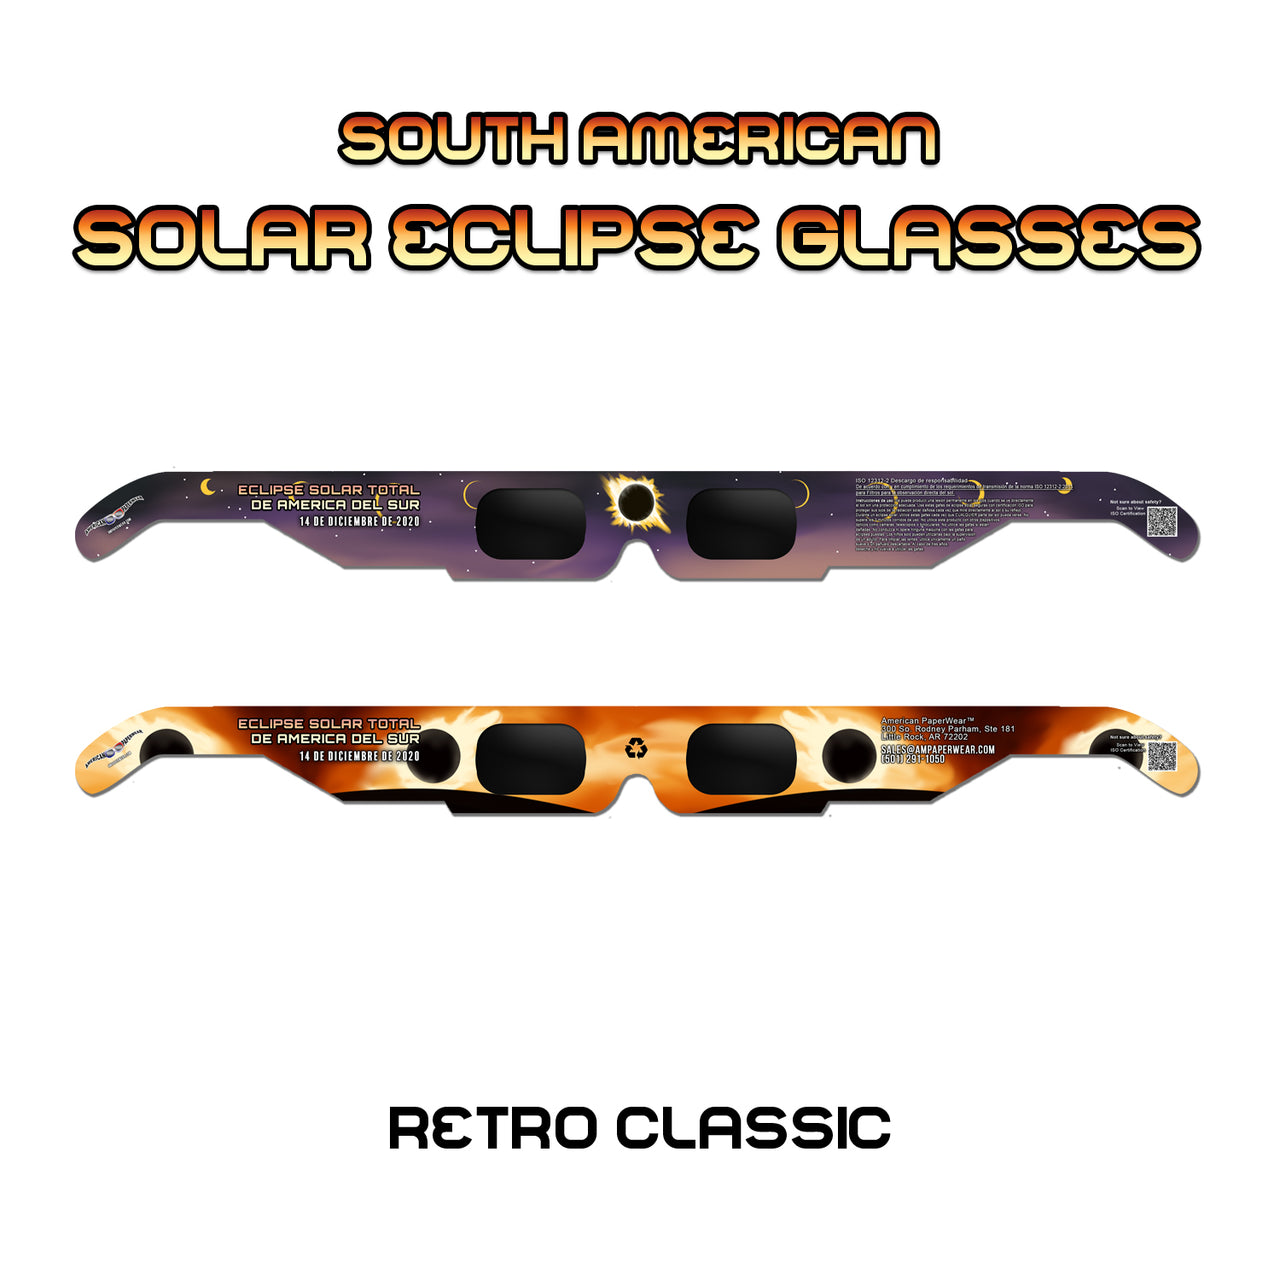 Solar Eclipse Glasses for South American Solar Eclipse, 2020 - American Paperwear